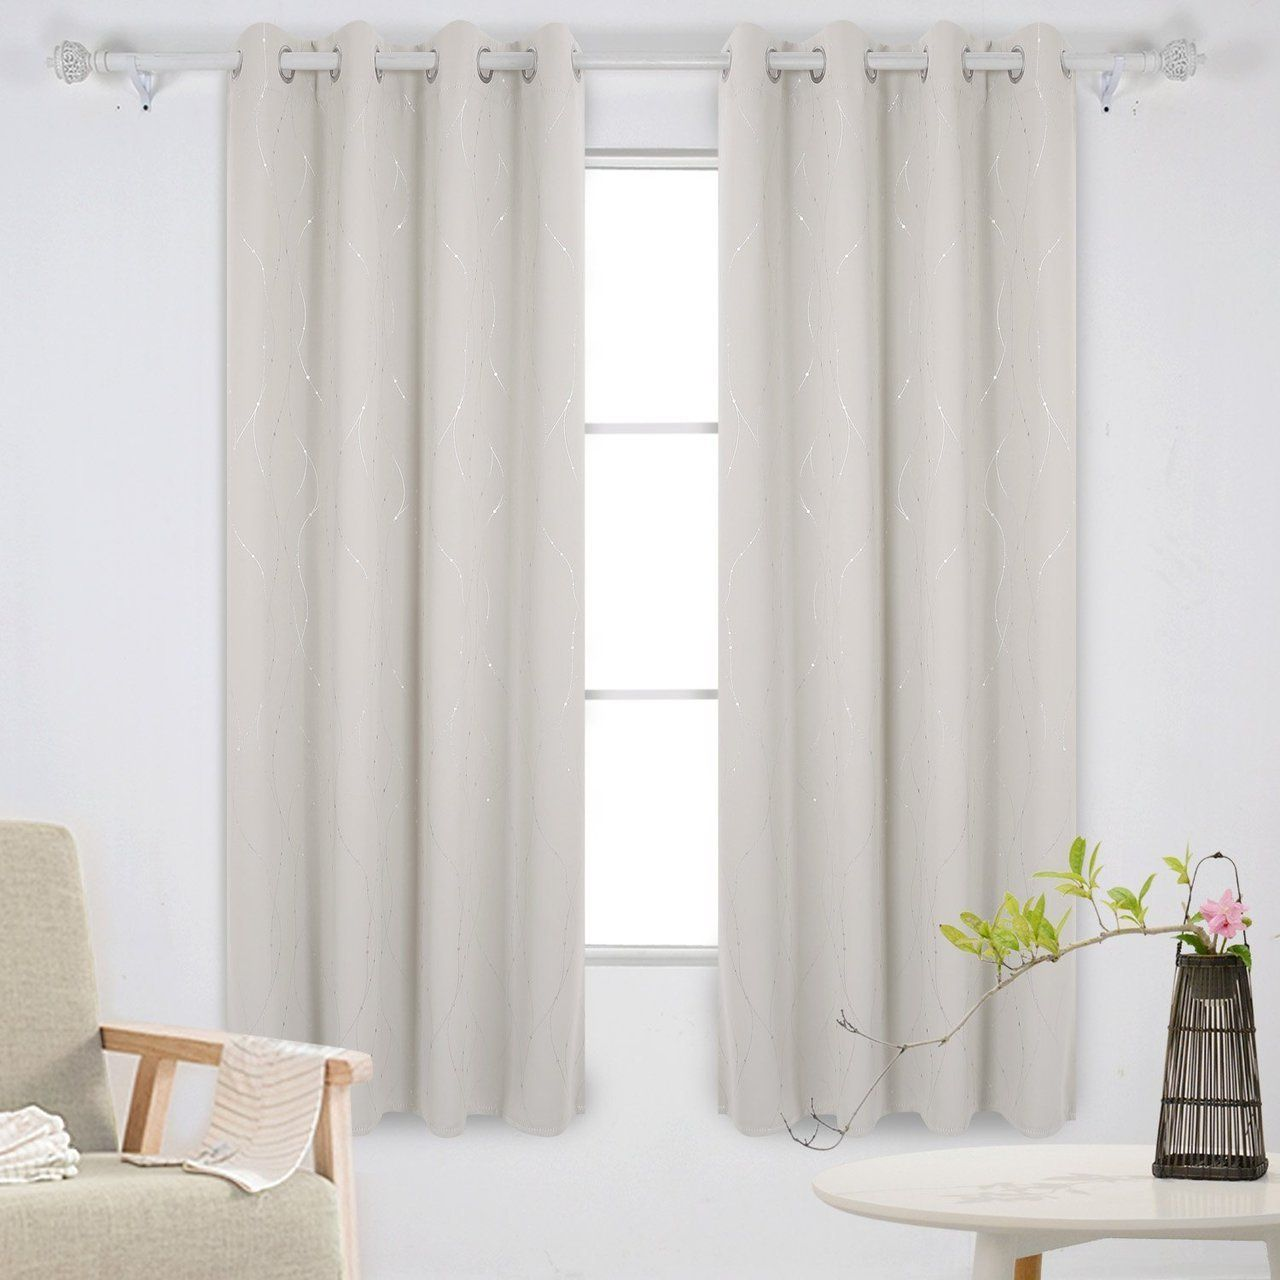 Creative window coverings  blackout curtains and drapes wave line with dots printed window